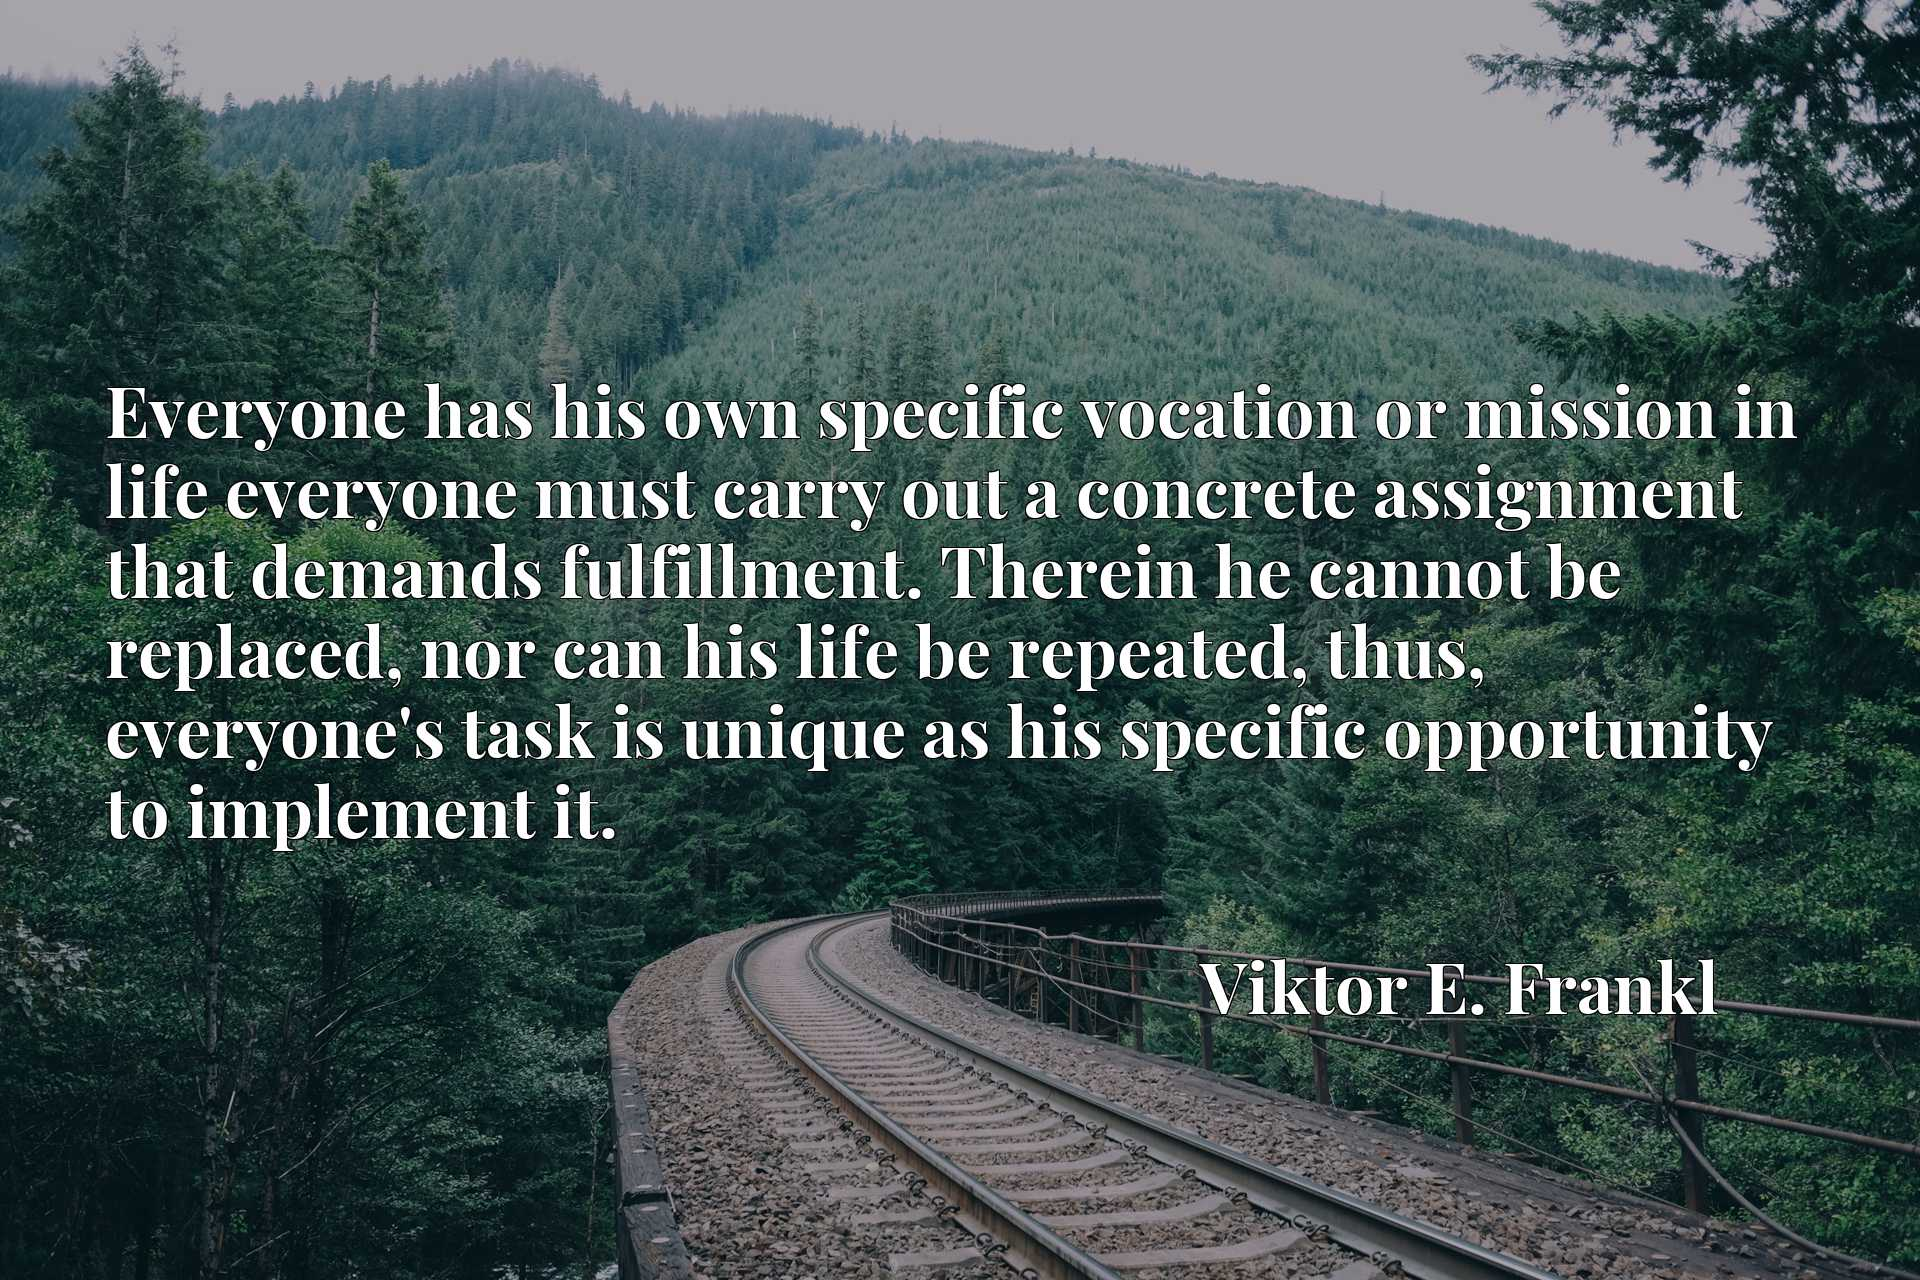 Everyone has his own specific vocation or mission in life everyone must carry out a concrete assignment that demands fulfillment. Therein he cannot be replaced, nor can his life be repeated, thus, everyone's task is unique as his specific opportunity to implement it.